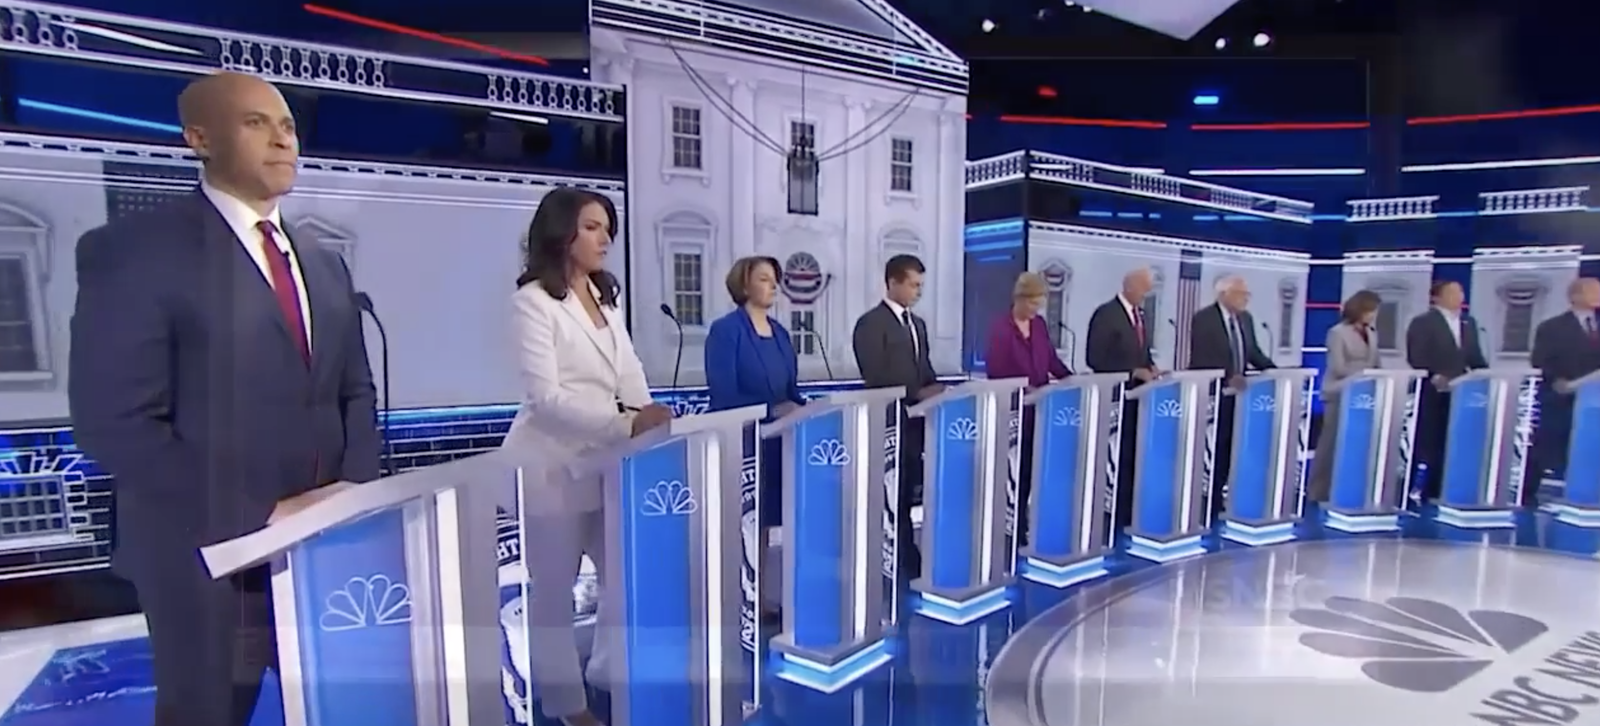 While the impeachment inquiry into President Donald Trump continues to dominate Capitol Hill, Democratic candidates for president are gearing up to take the debate stage in Atlanta. (Photo: Sinclair Broadcast Group)